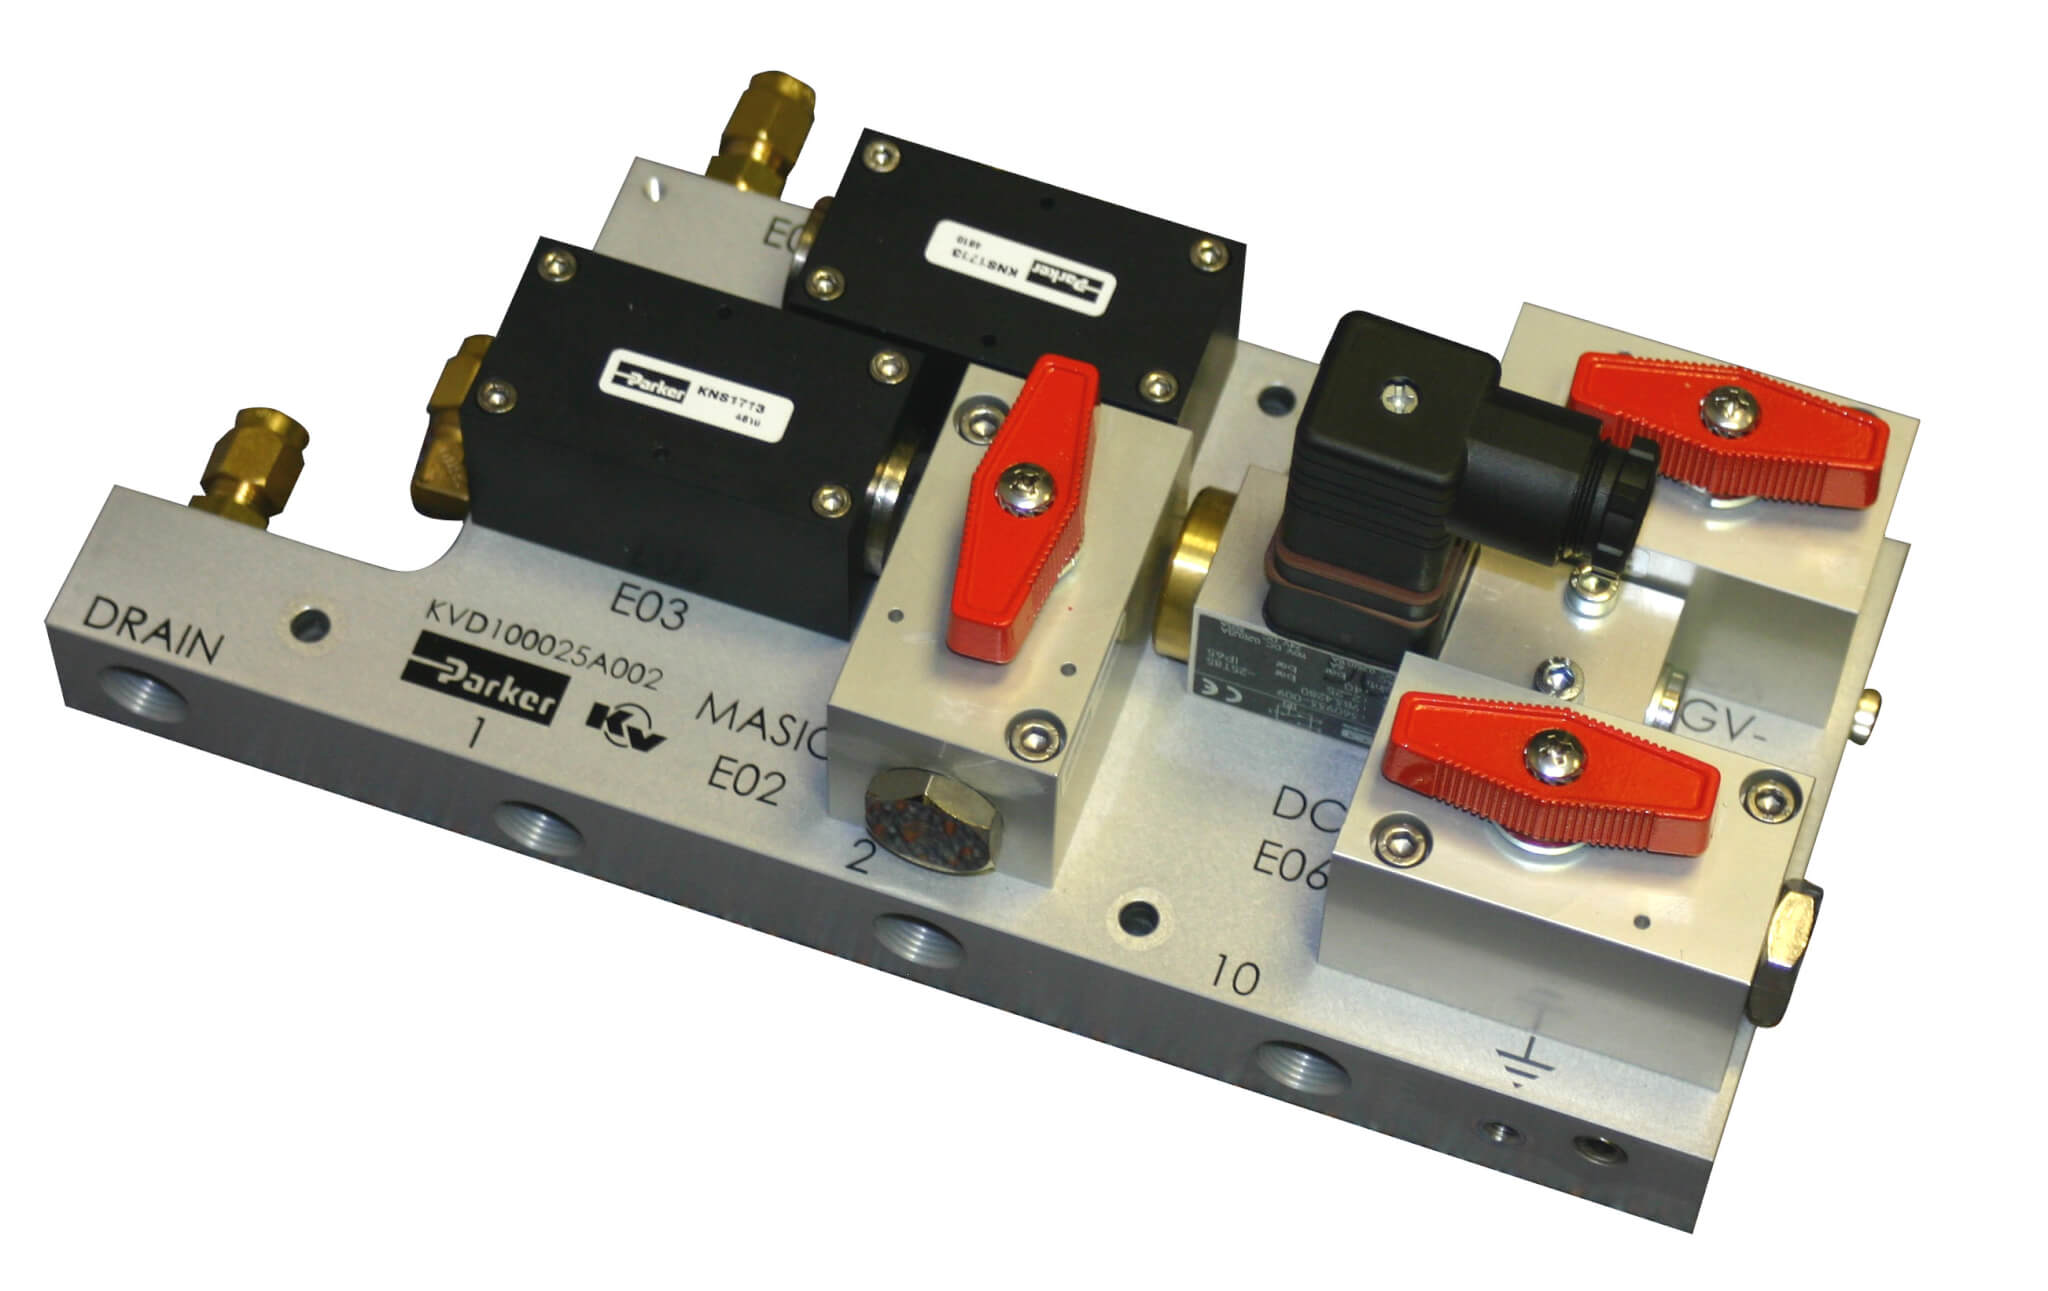 Modular Control System including valve for pantograph controls